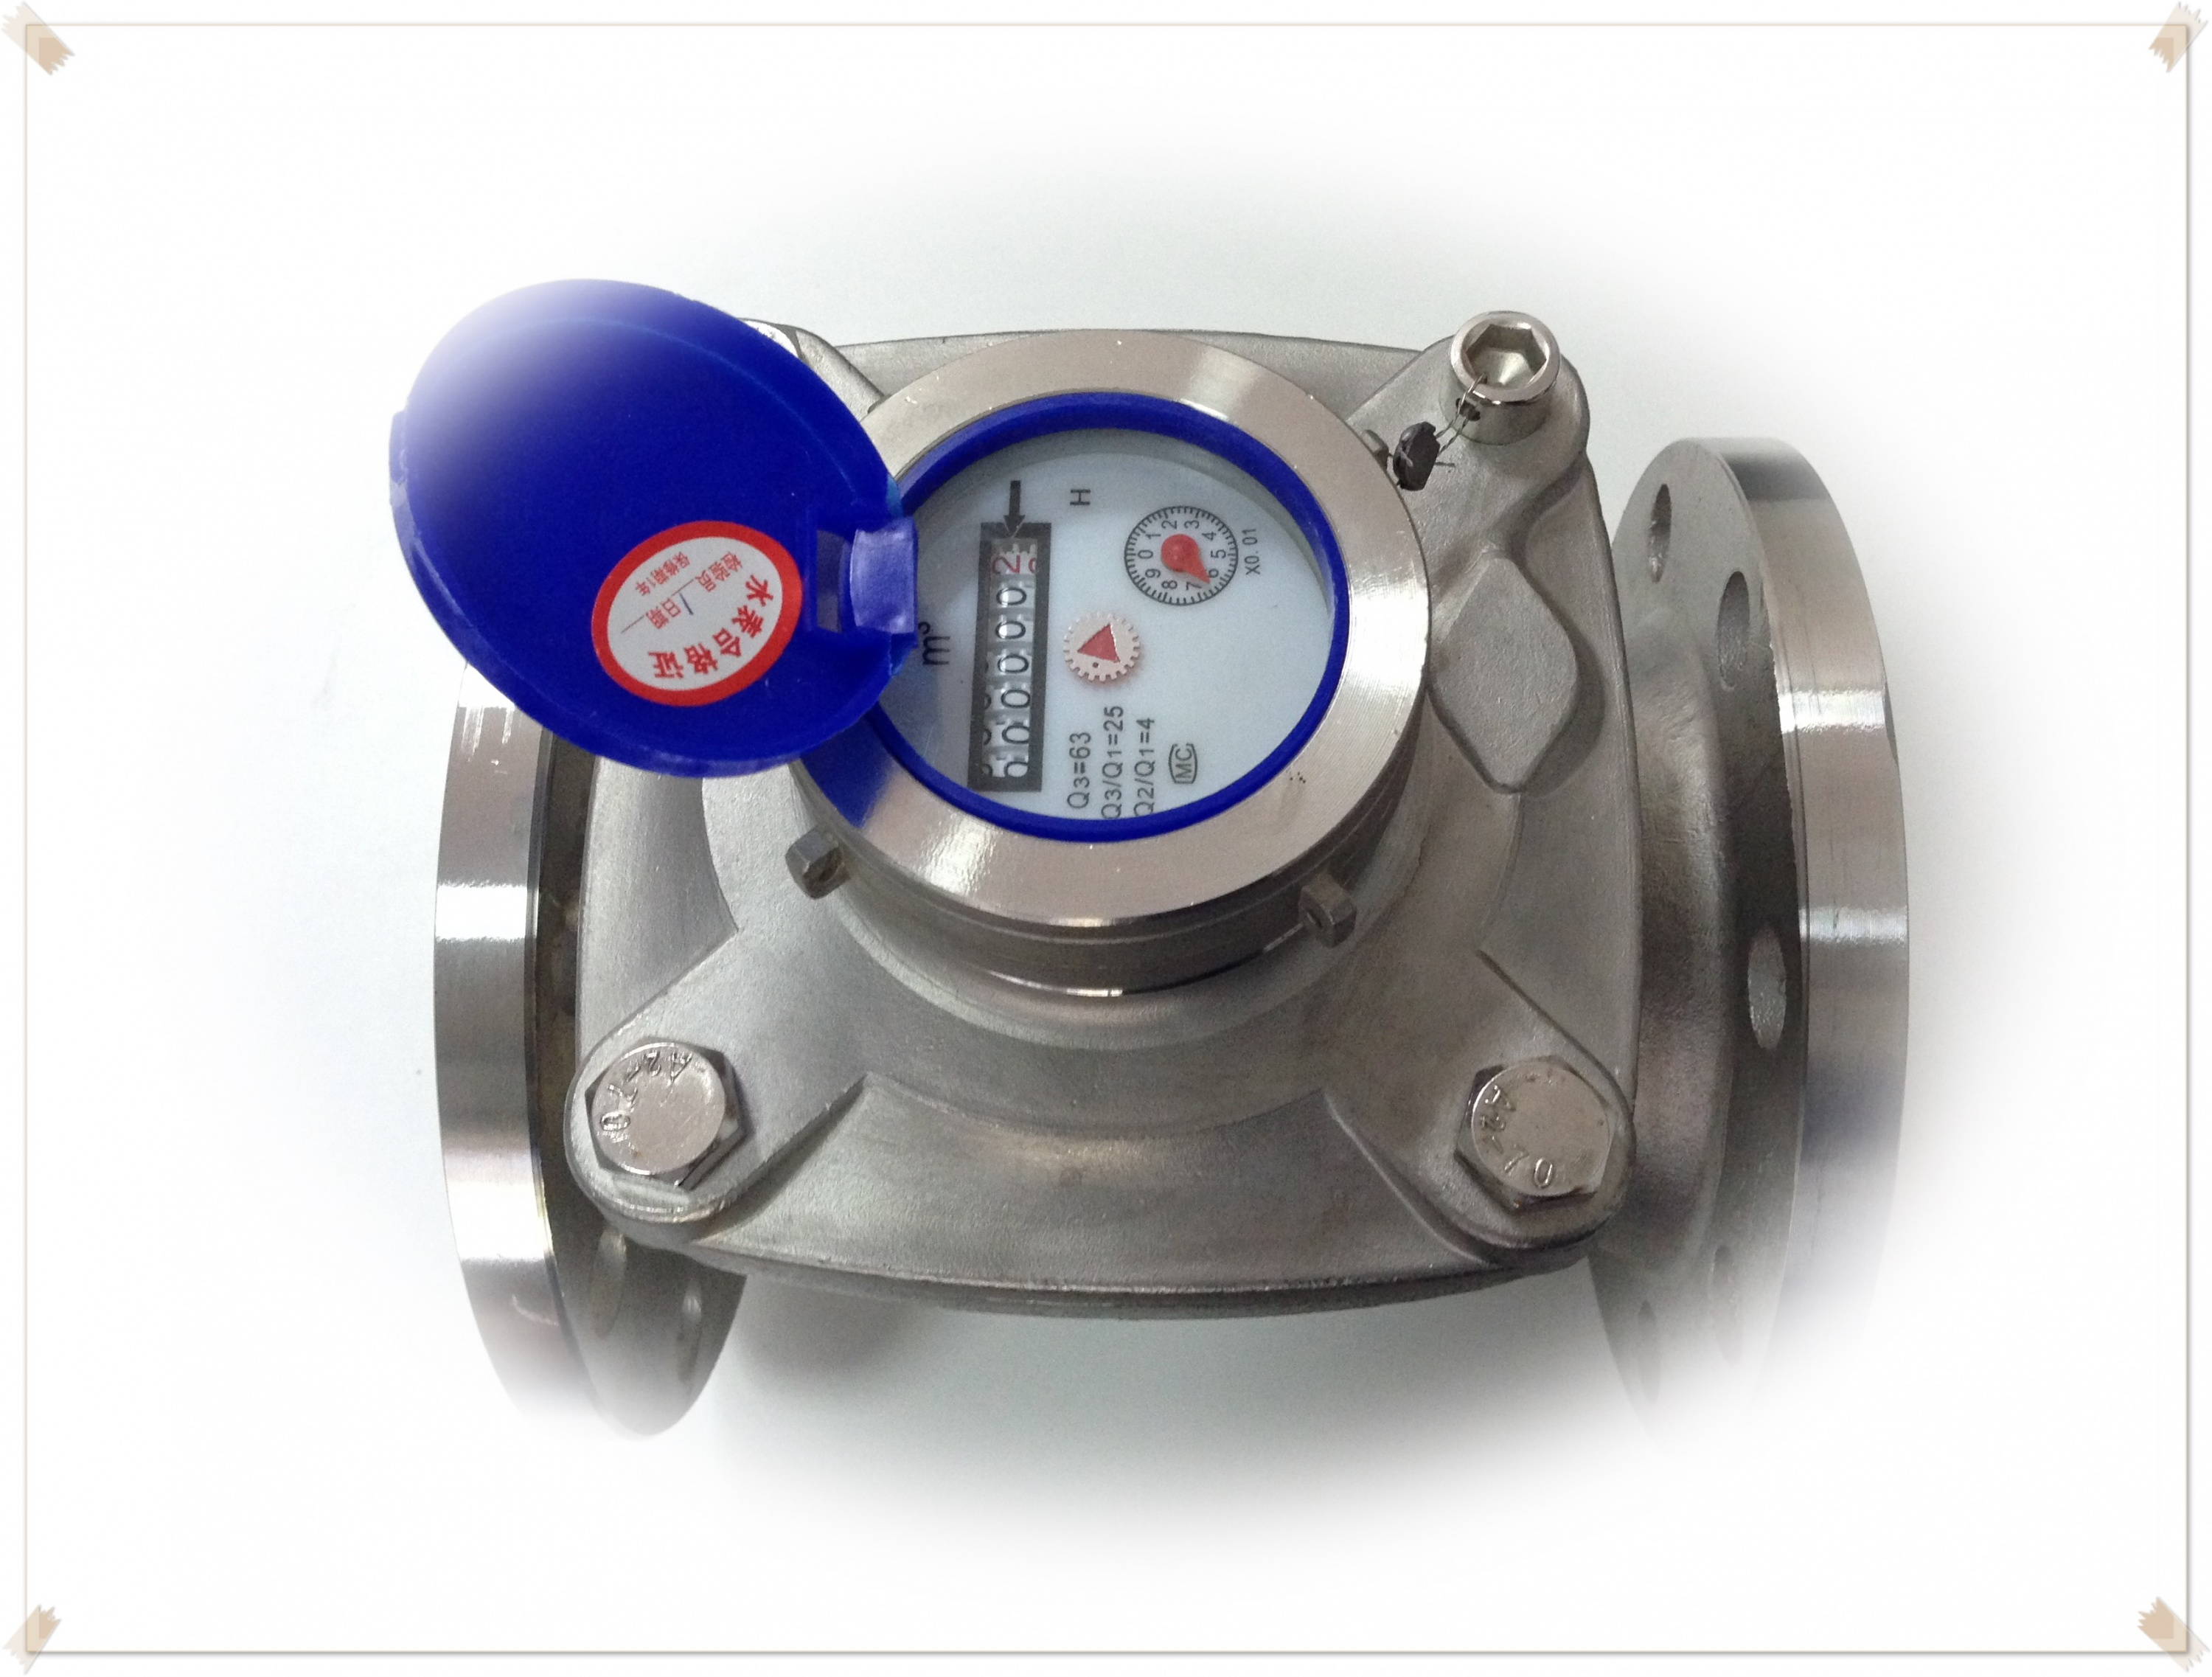 Stainless 304 water meter